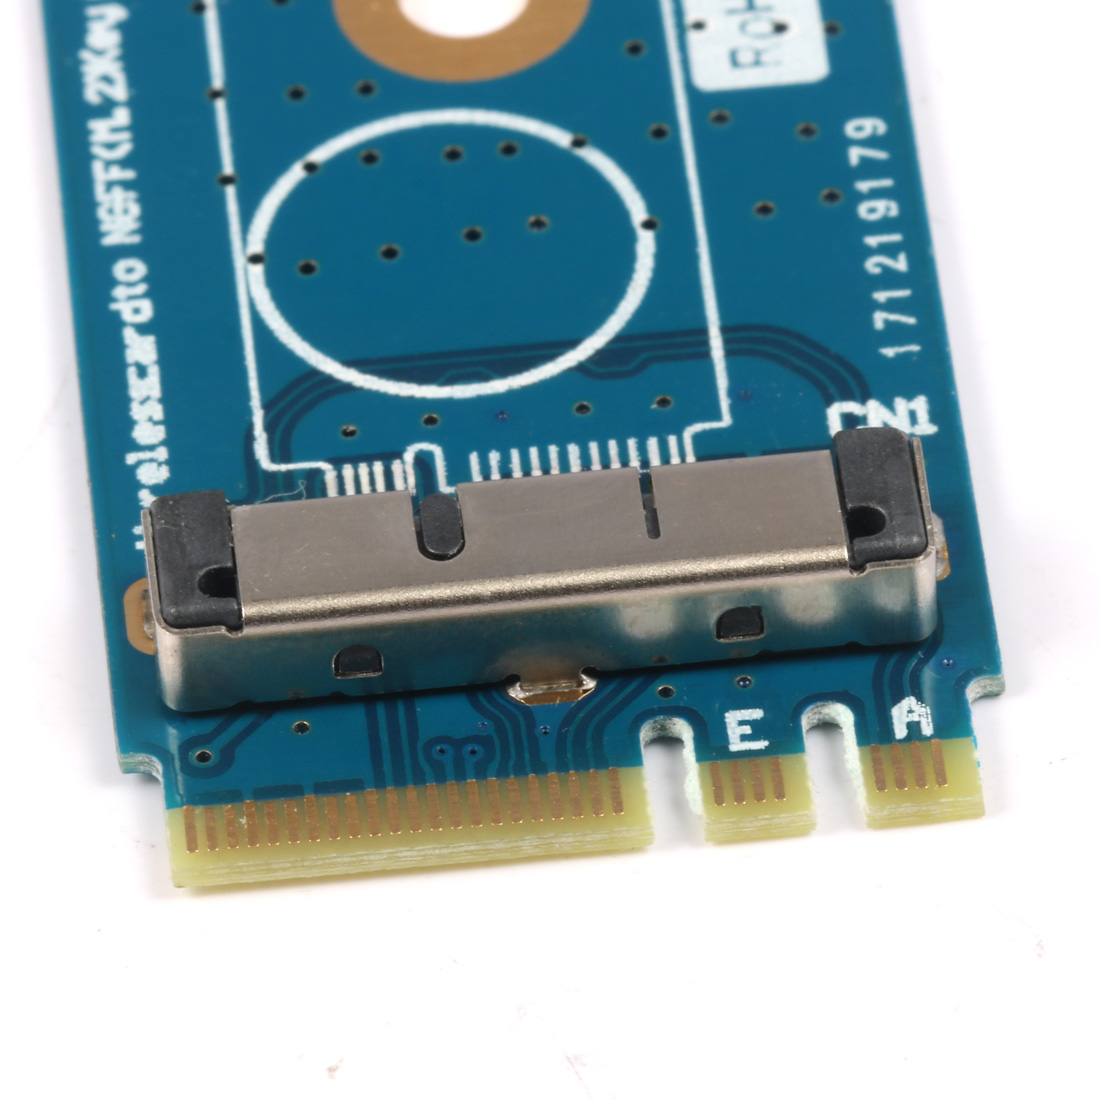 US$ 4 78 - Mini PCI-E to NGFF M 2 M KEY BCM94360CS2